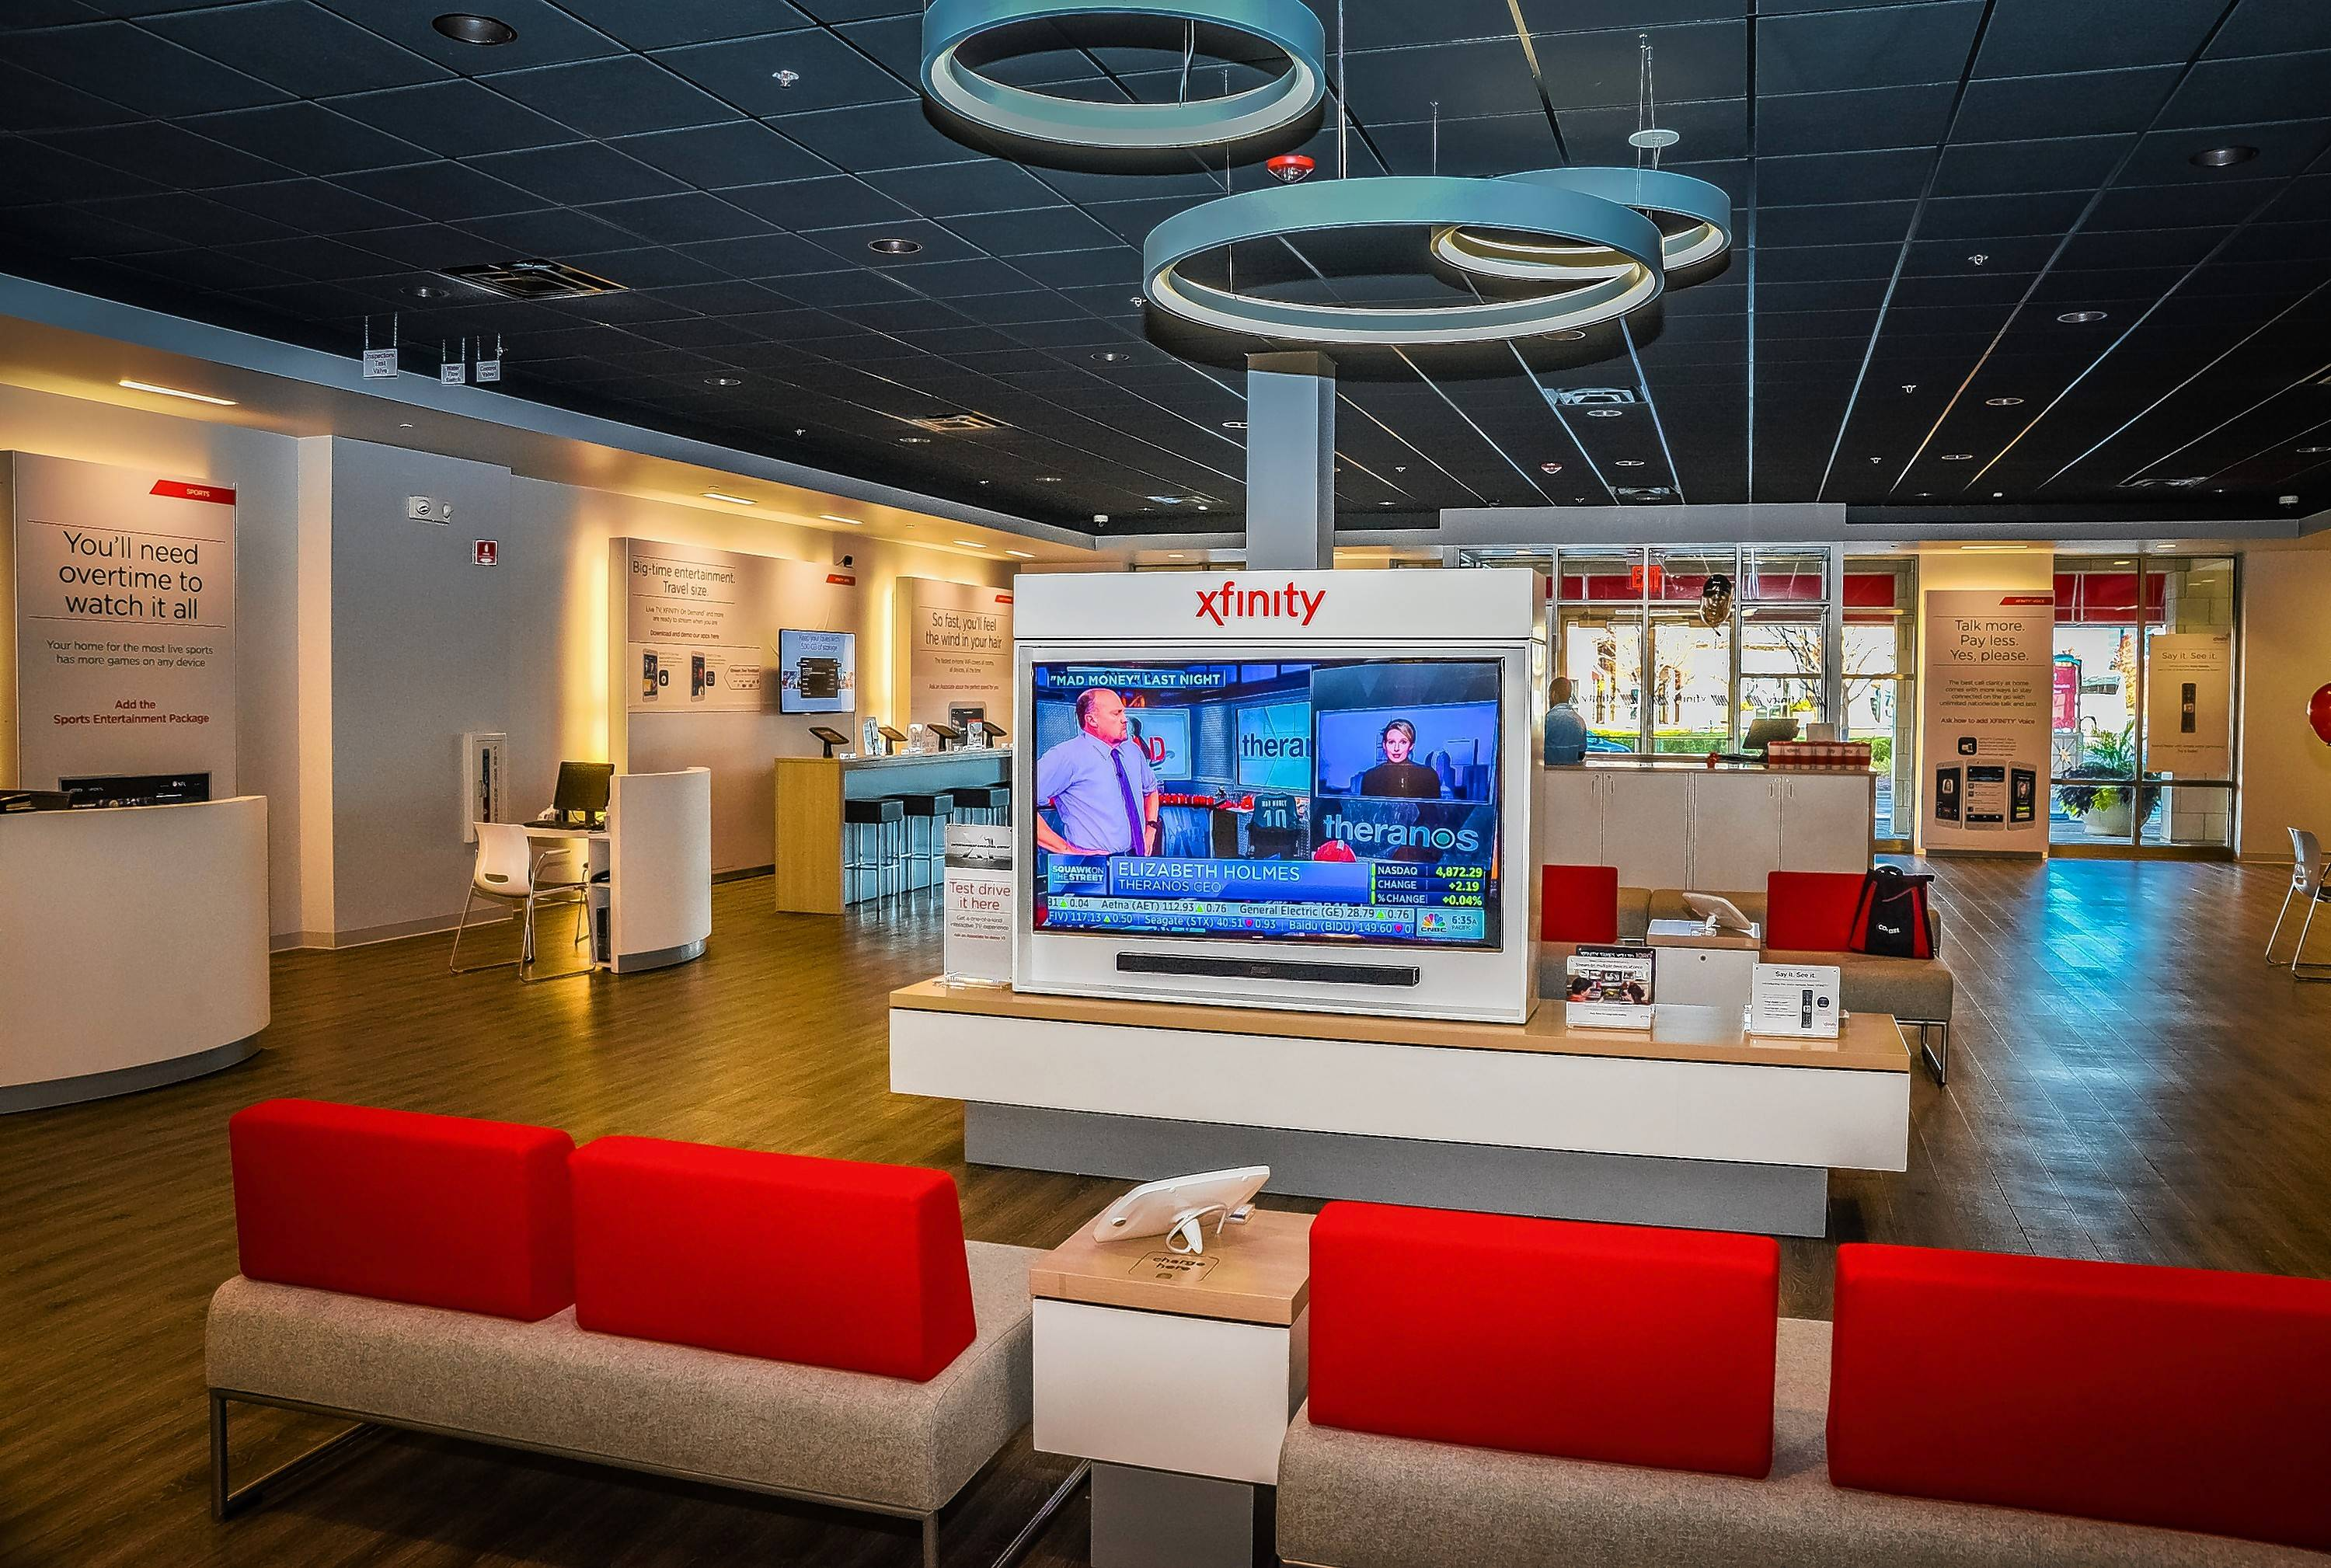 Mar 13,  · Comcast hours. What are Comcast office hours of operation and what are their customer service hours today? Comcast is the biggest cable TV, internet and phones company in the starke.ga you can find what are Comcast hours, and more info about their locations .